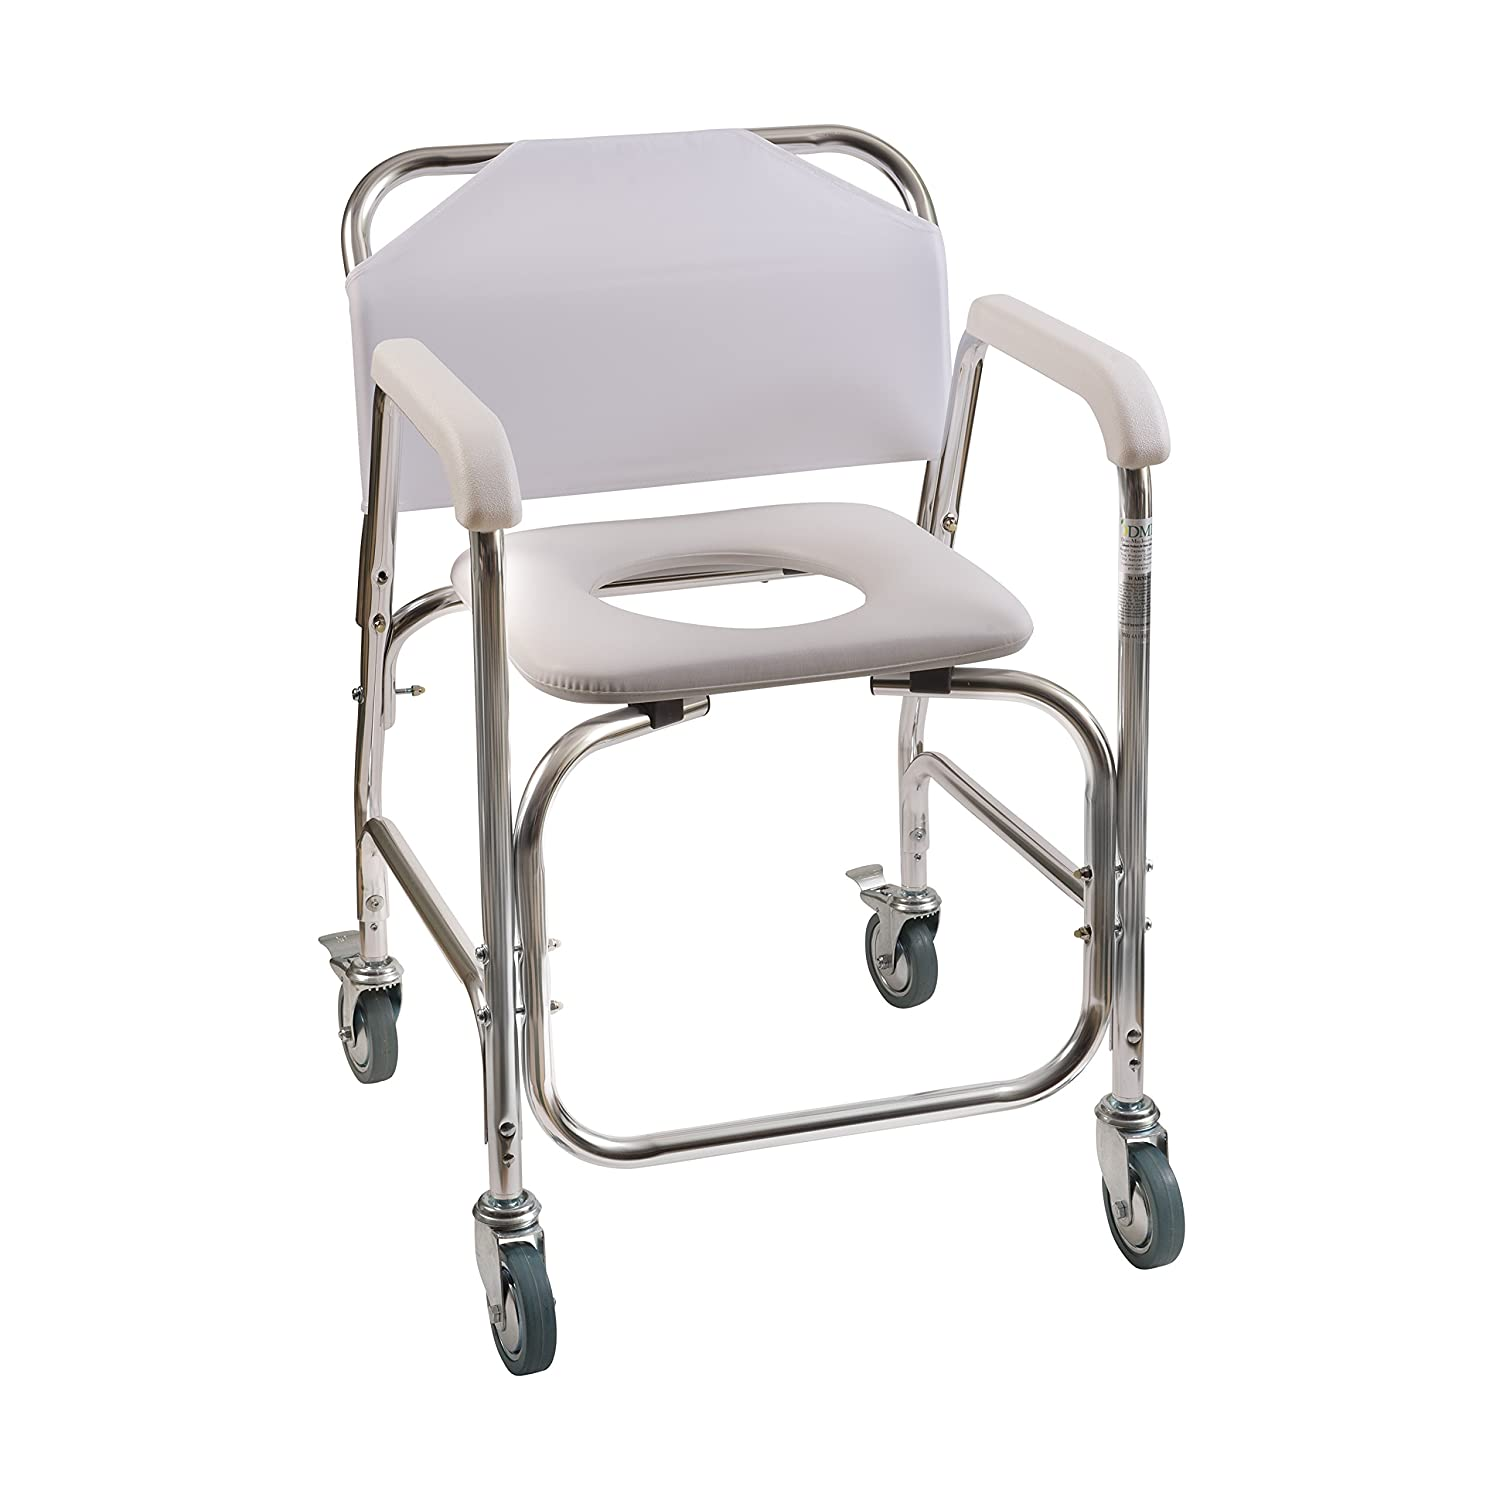 Amazon.com: Duro-Med Shower Chair With Wheels, Commode Chair and ...